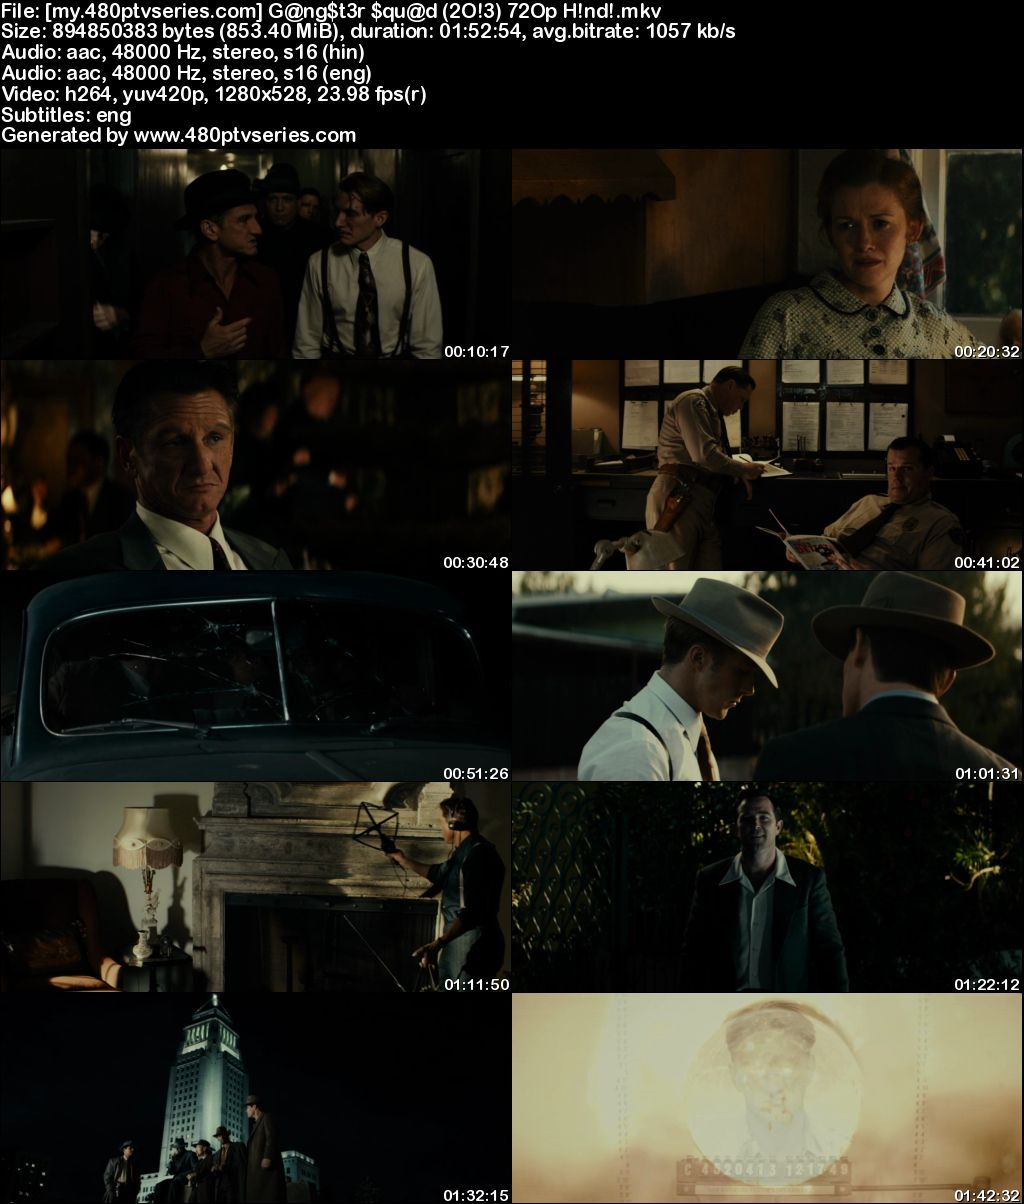 Watch Online Free Gangster Squad (2013) Full Hindi Dual Audio Movie Download 480p 720p Bluray